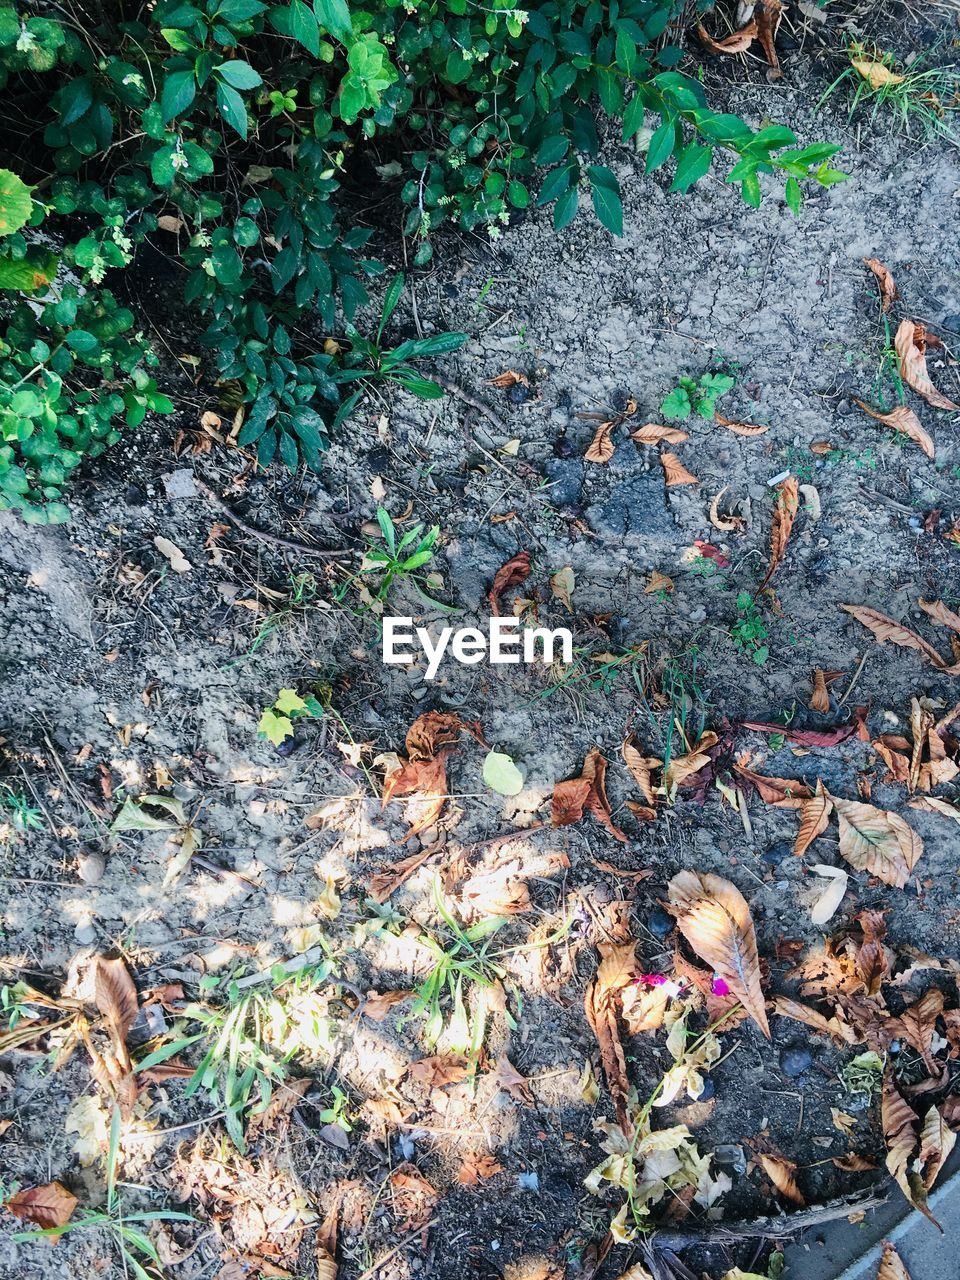 land, leaf, nature, plant, plant part, high angle view, day, growth, no people, field, outdoors, dry, forest, green color, beauty in nature, falling, tranquility, tree, leaves, messy